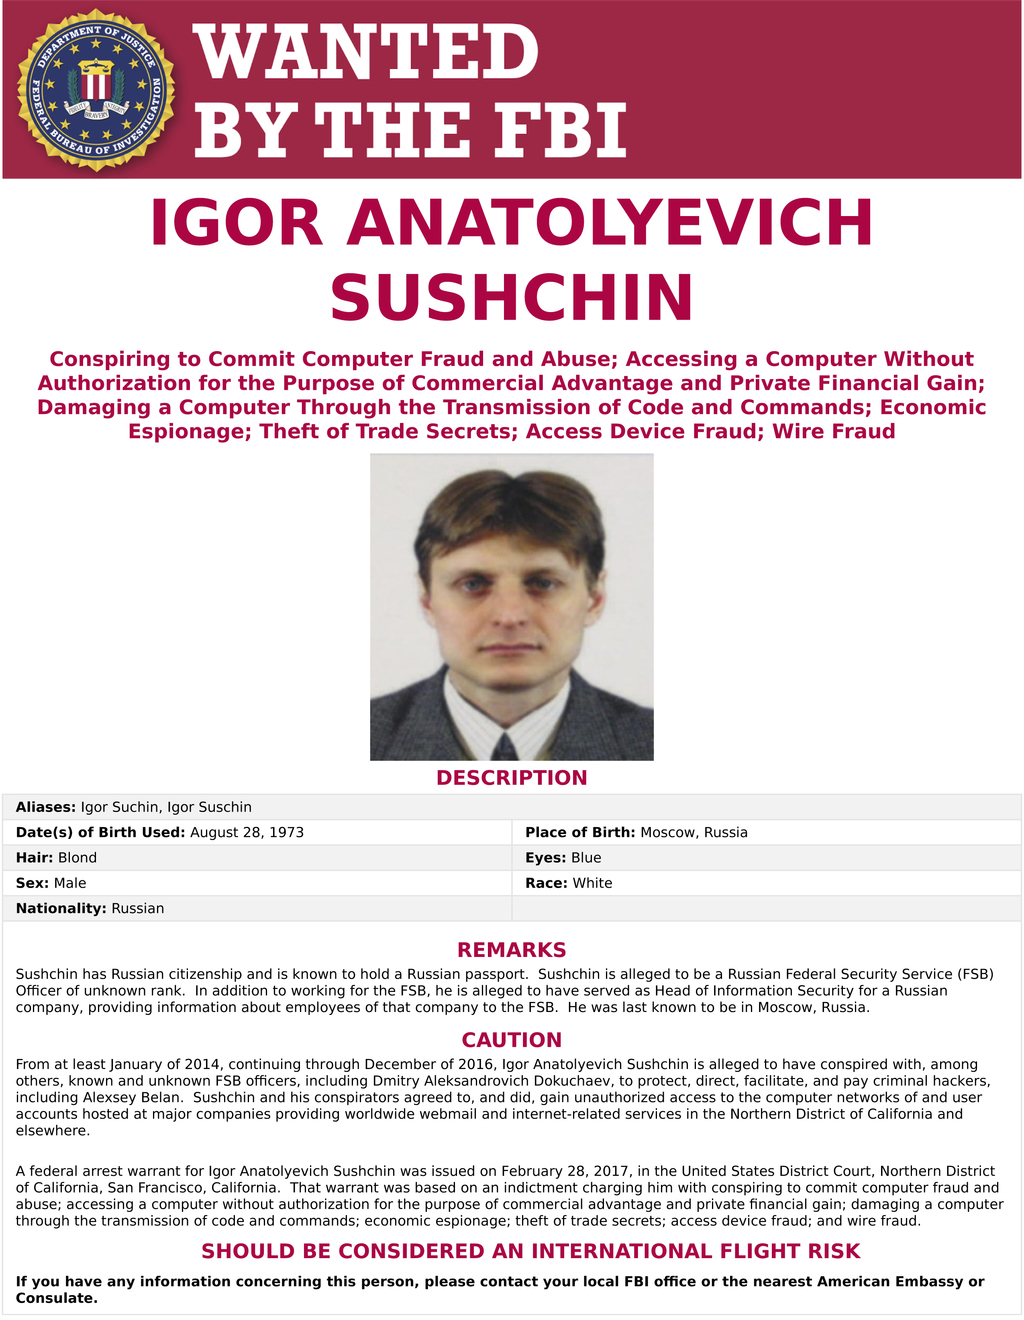 This wanted poster provided by the FBI shows Igor Anatolyevich Sushchin, 43, a Russian national and resident is seen. The United States...